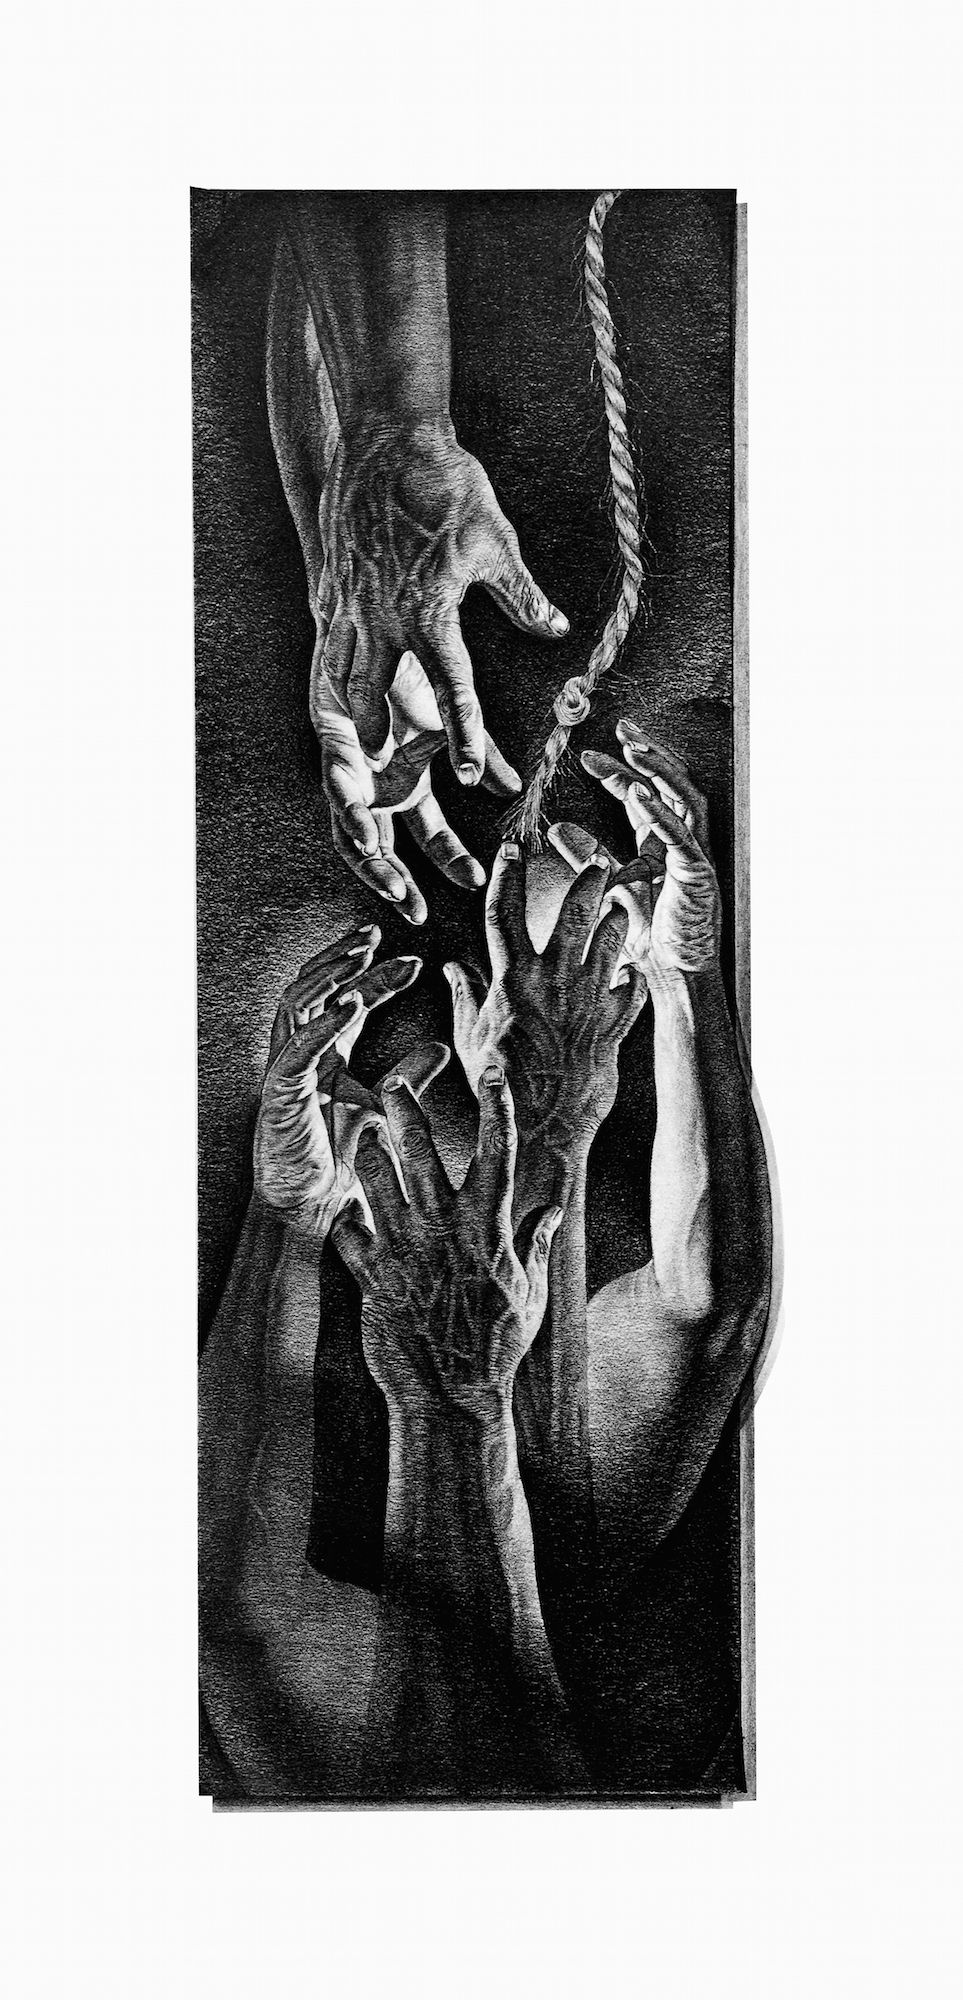 Pencil drawing print of hands reaching to help each other by world famous artist john nelson print size 13x28